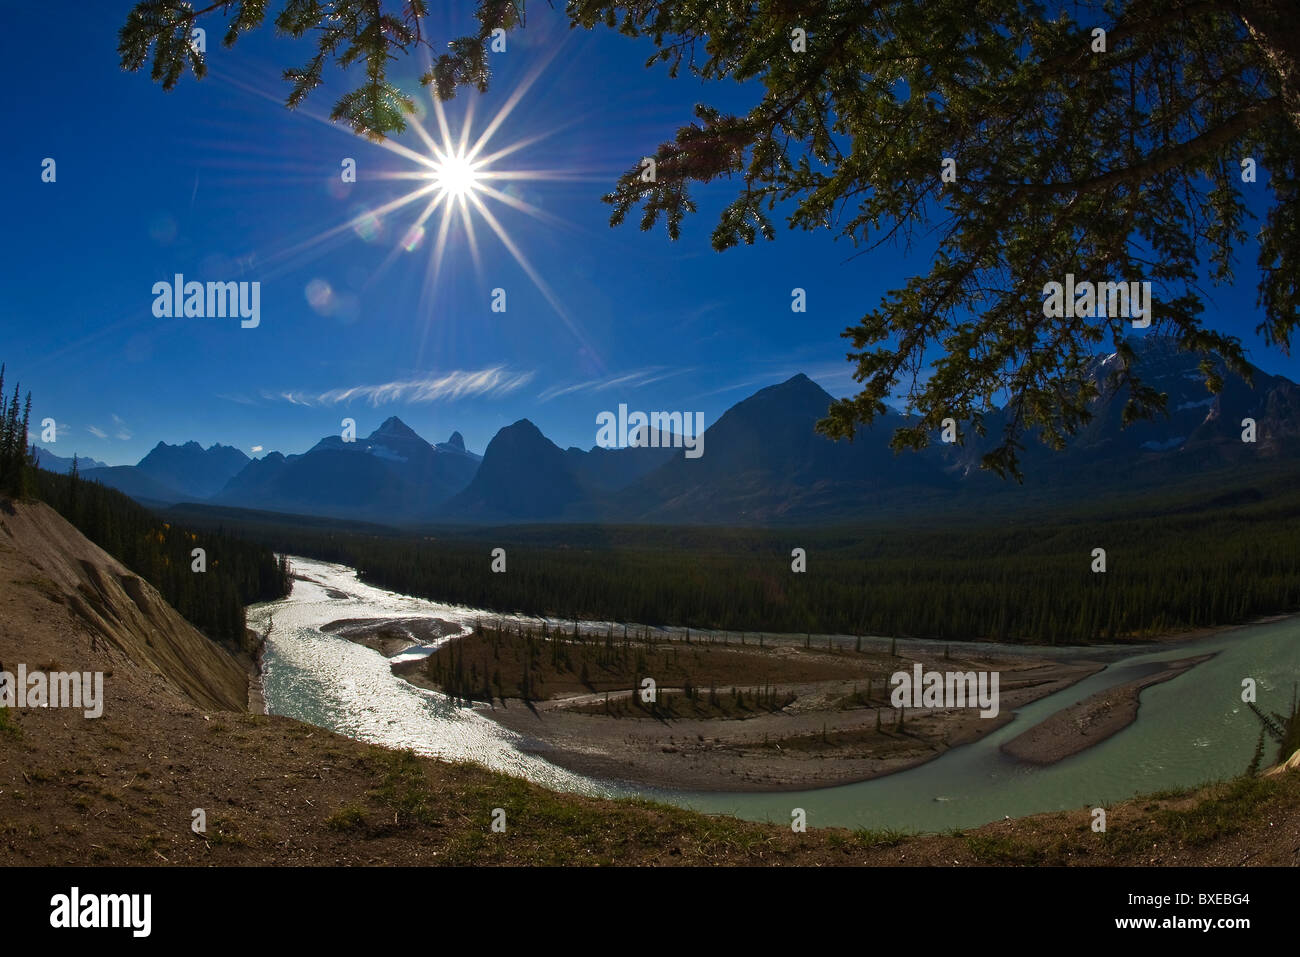 The Canadian Rocky Mountains and the Athabasca River - Stock Image